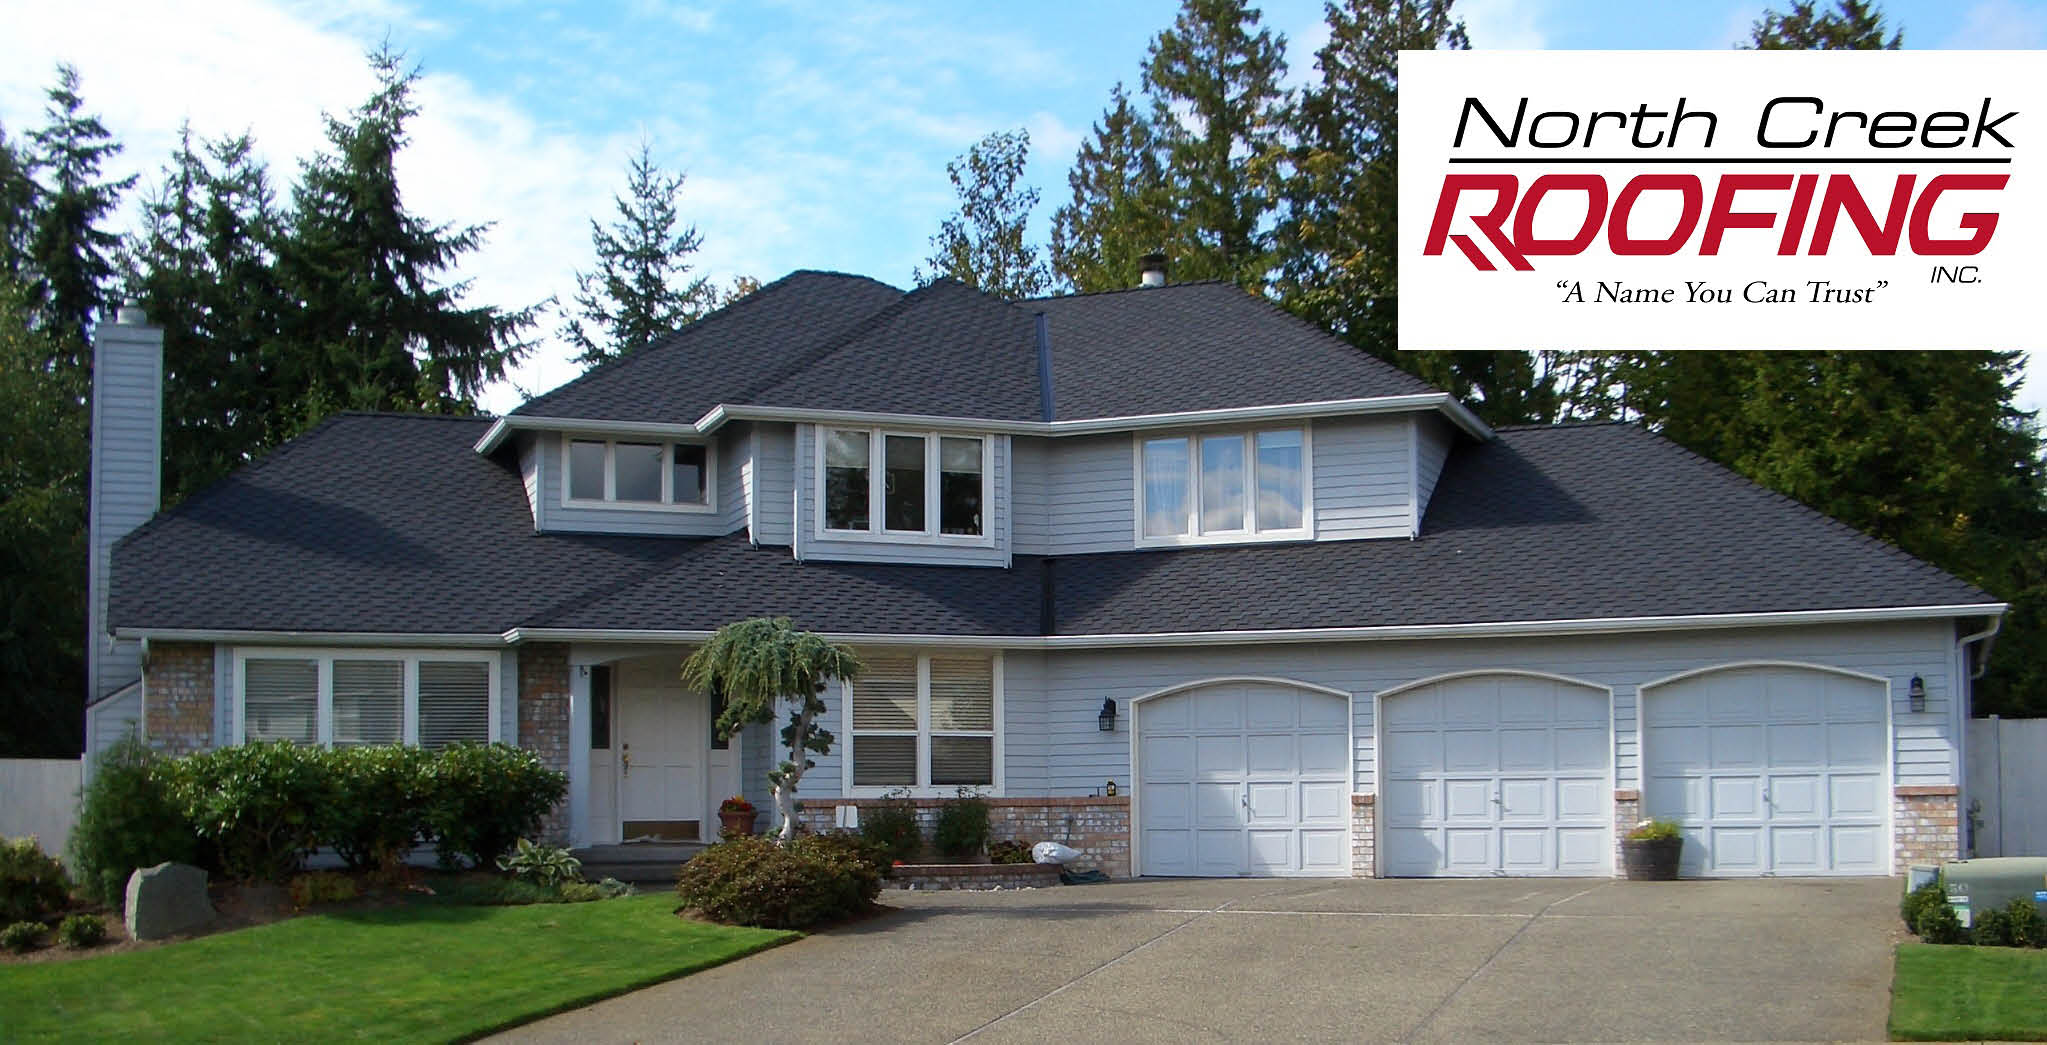 North Creek Roofing - A Name You Can Trust - Mill Creek, Washington - roofers in Mill Creek - Mill Creek roofing companies